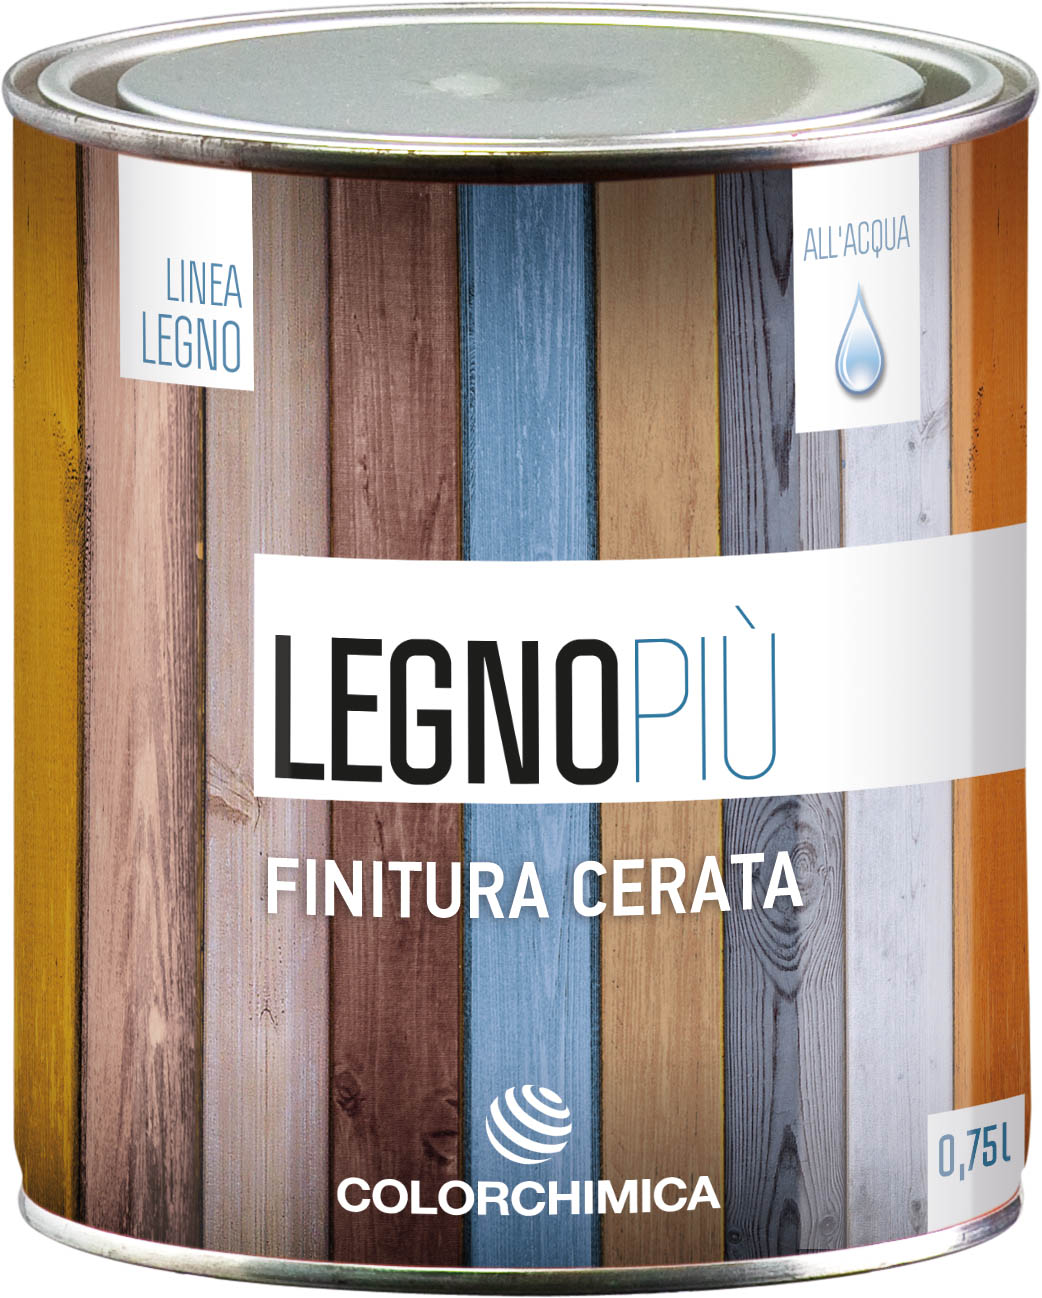 LegnoPiu NEW DESIGN Linea All'Acqua FINITURA CERATA